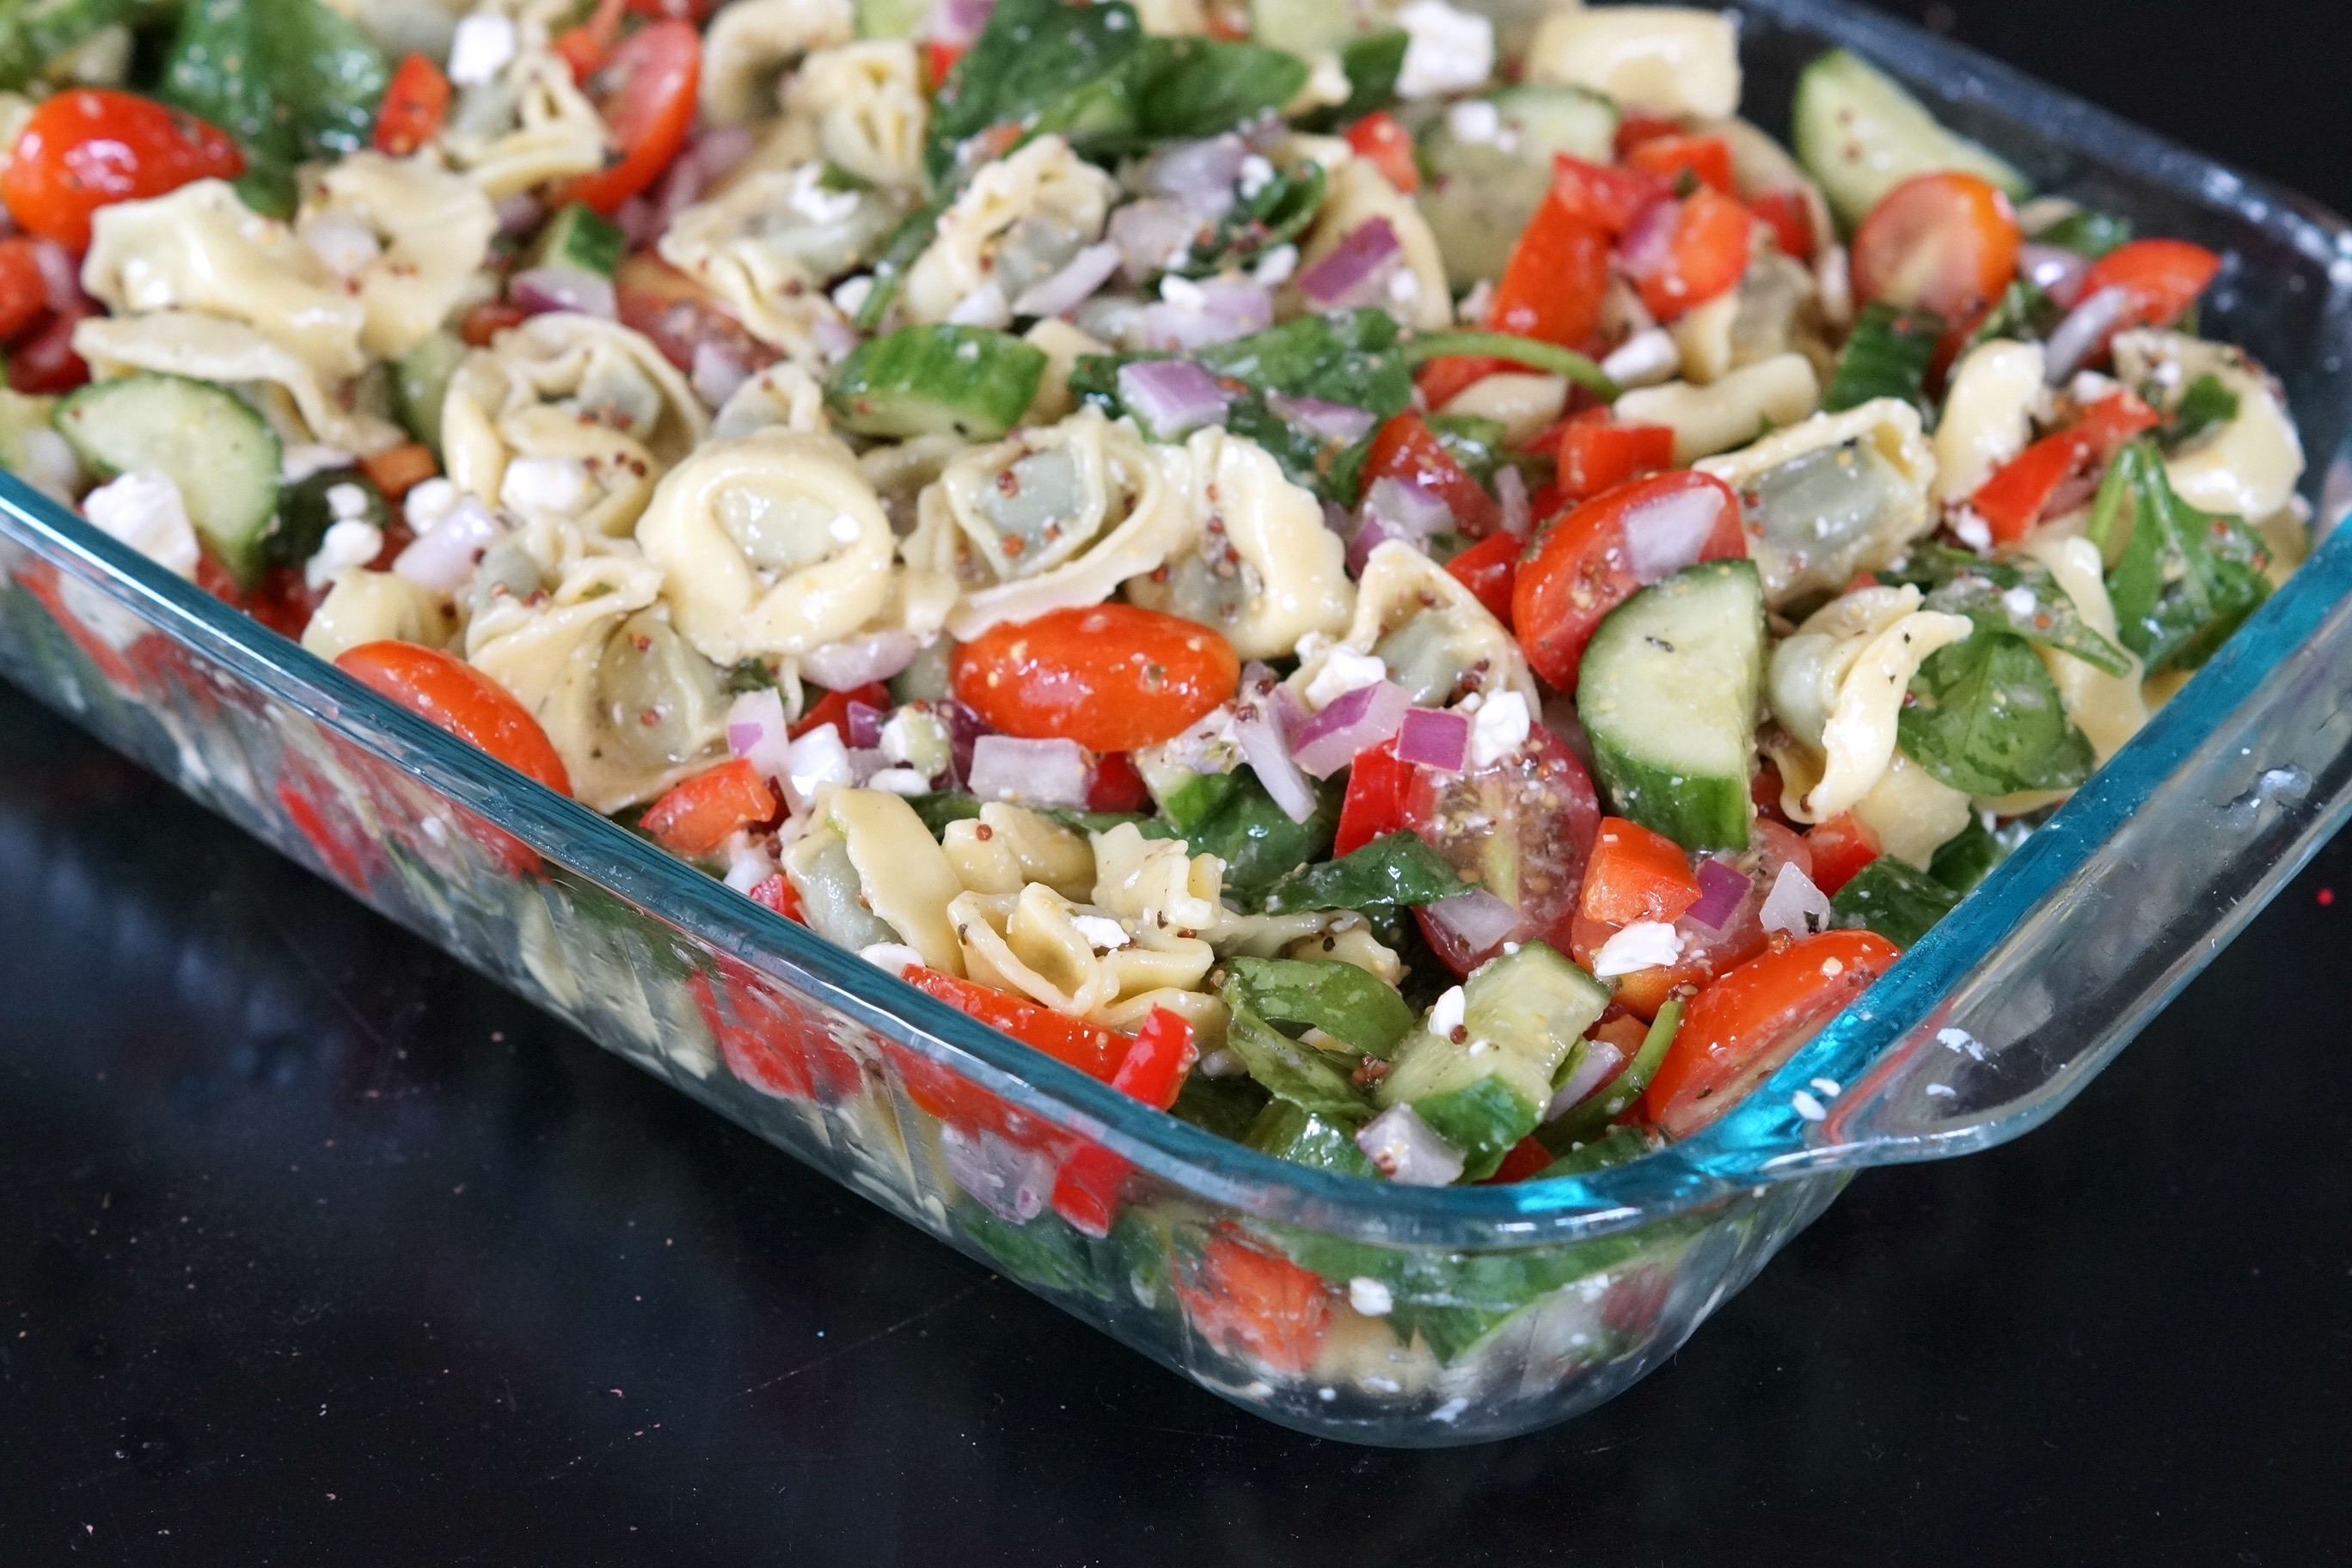 Looking for the perfect dish for a pot luck that doesn't require a lot of time in the kitchen? Bring this crowd-pleasing tortellini pasta salad.